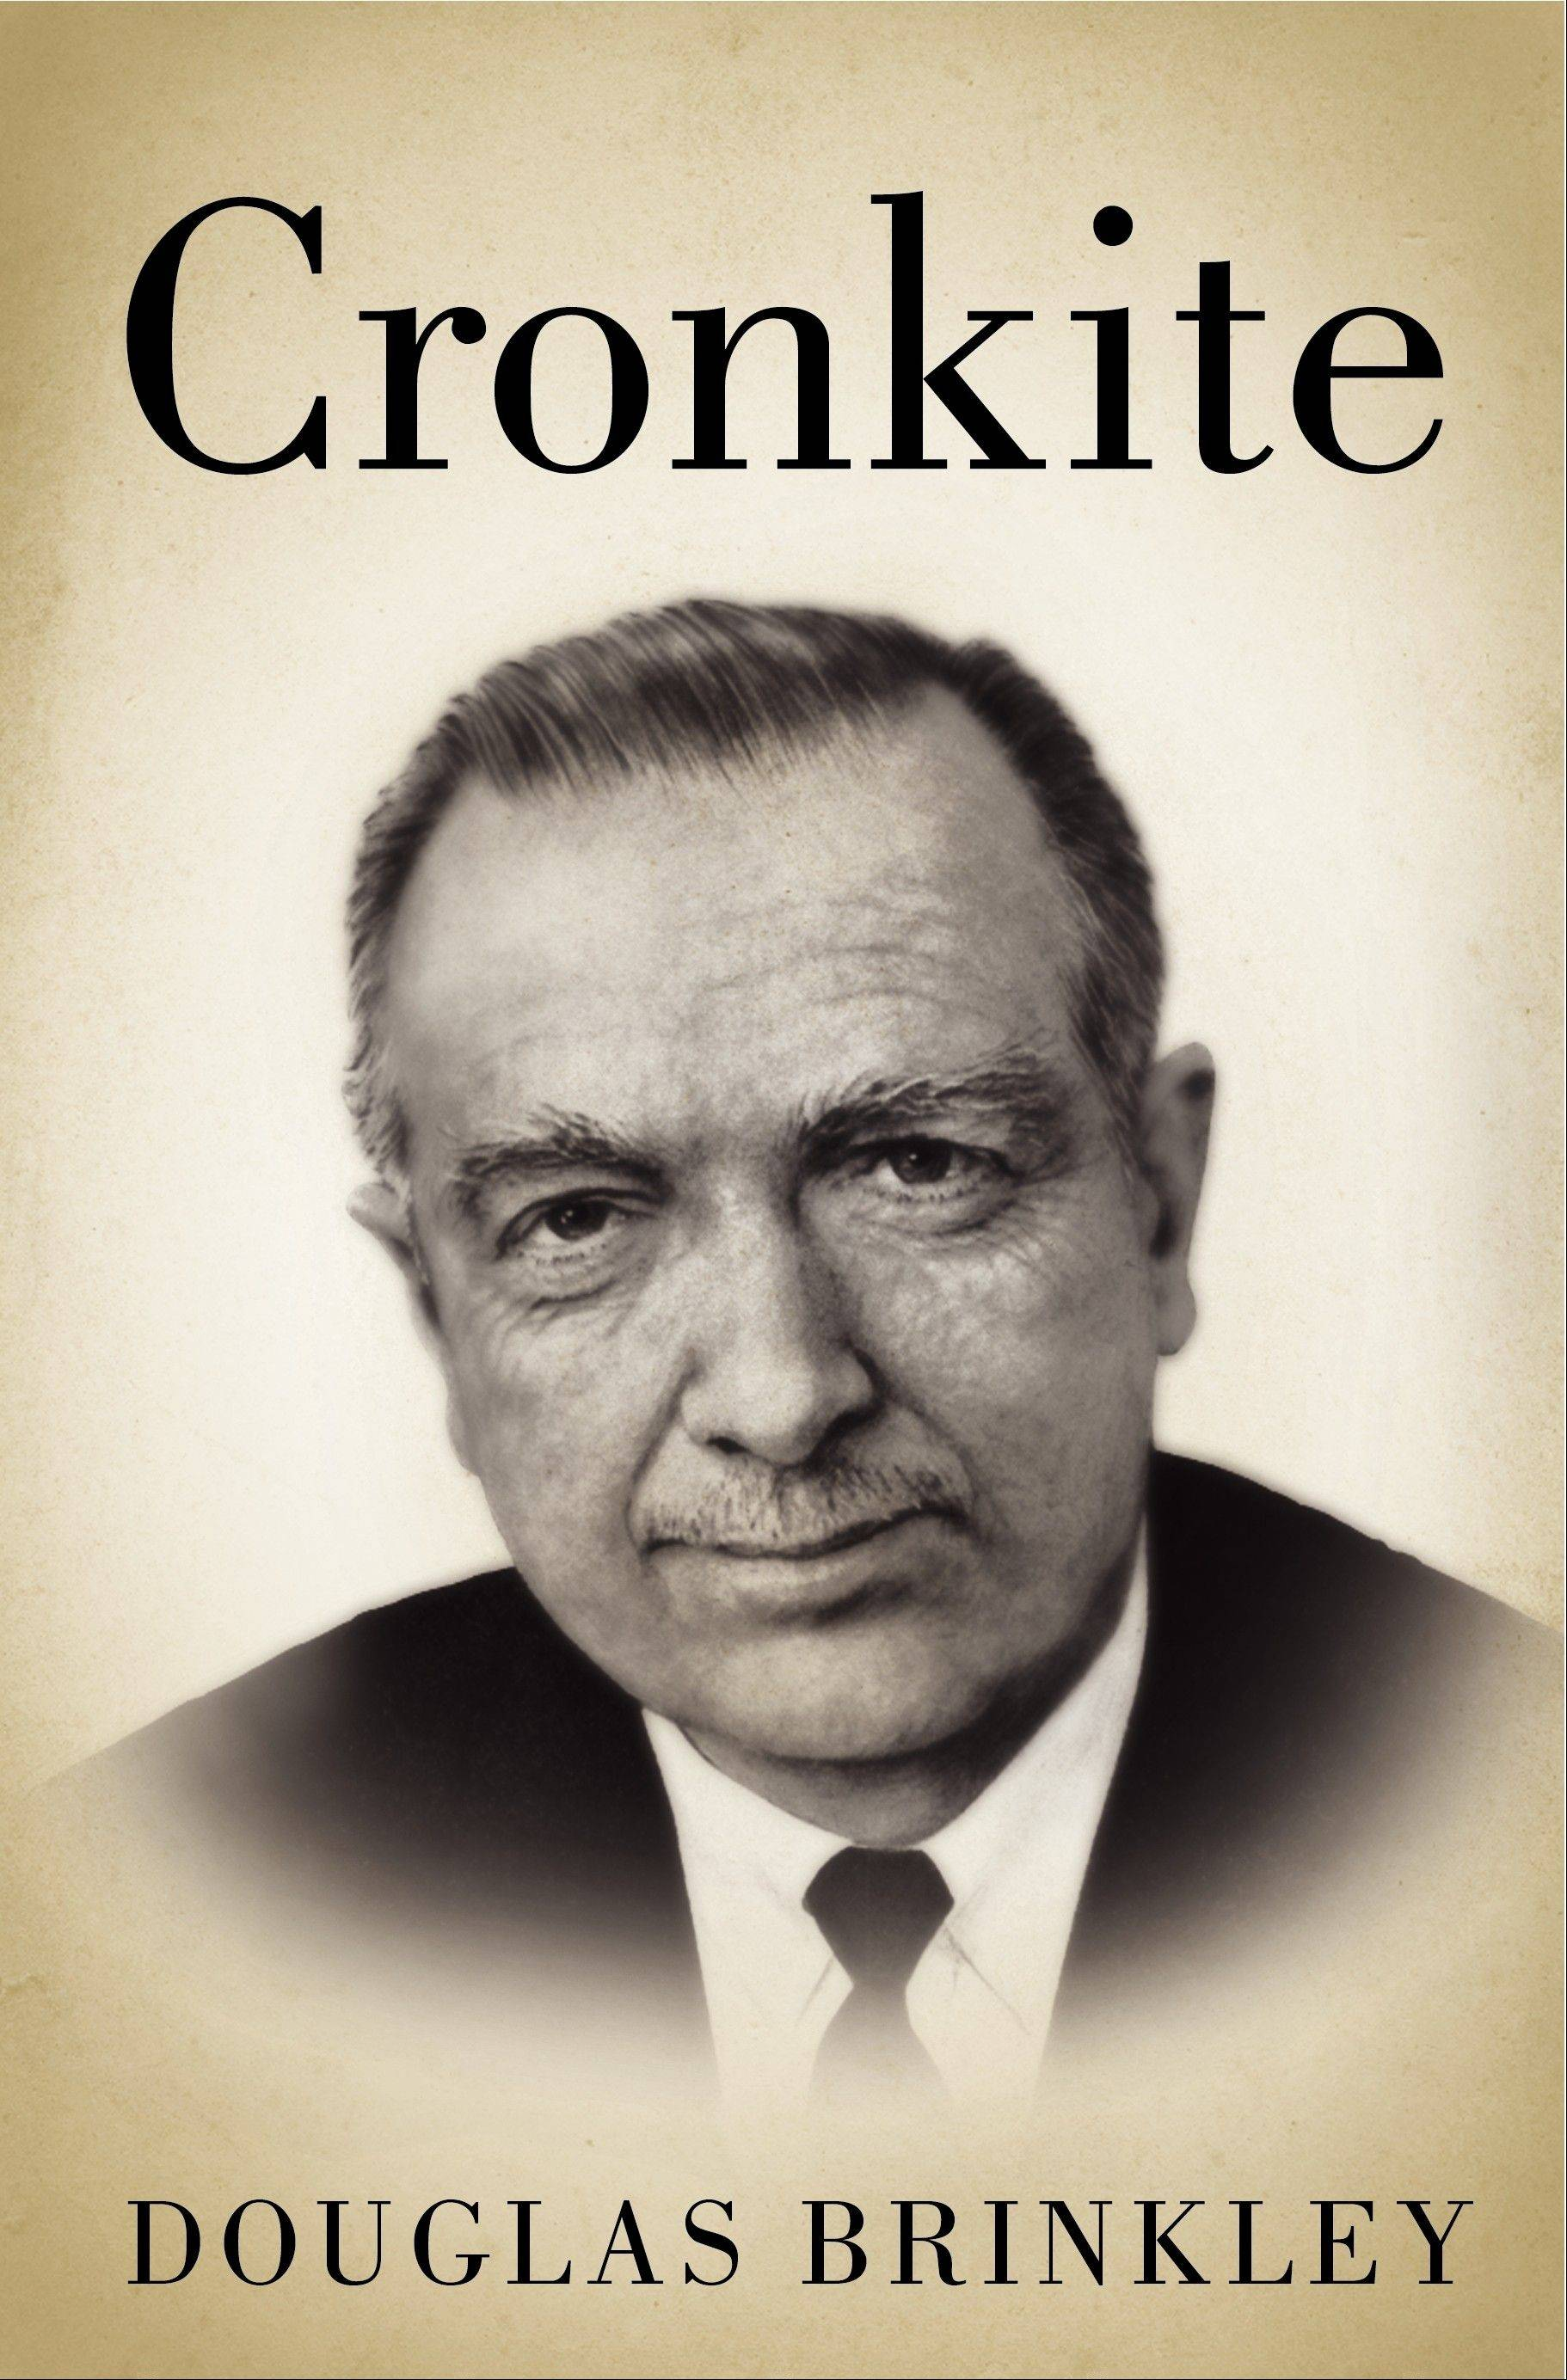 """Cronkite"" by Douglas Brinkley"